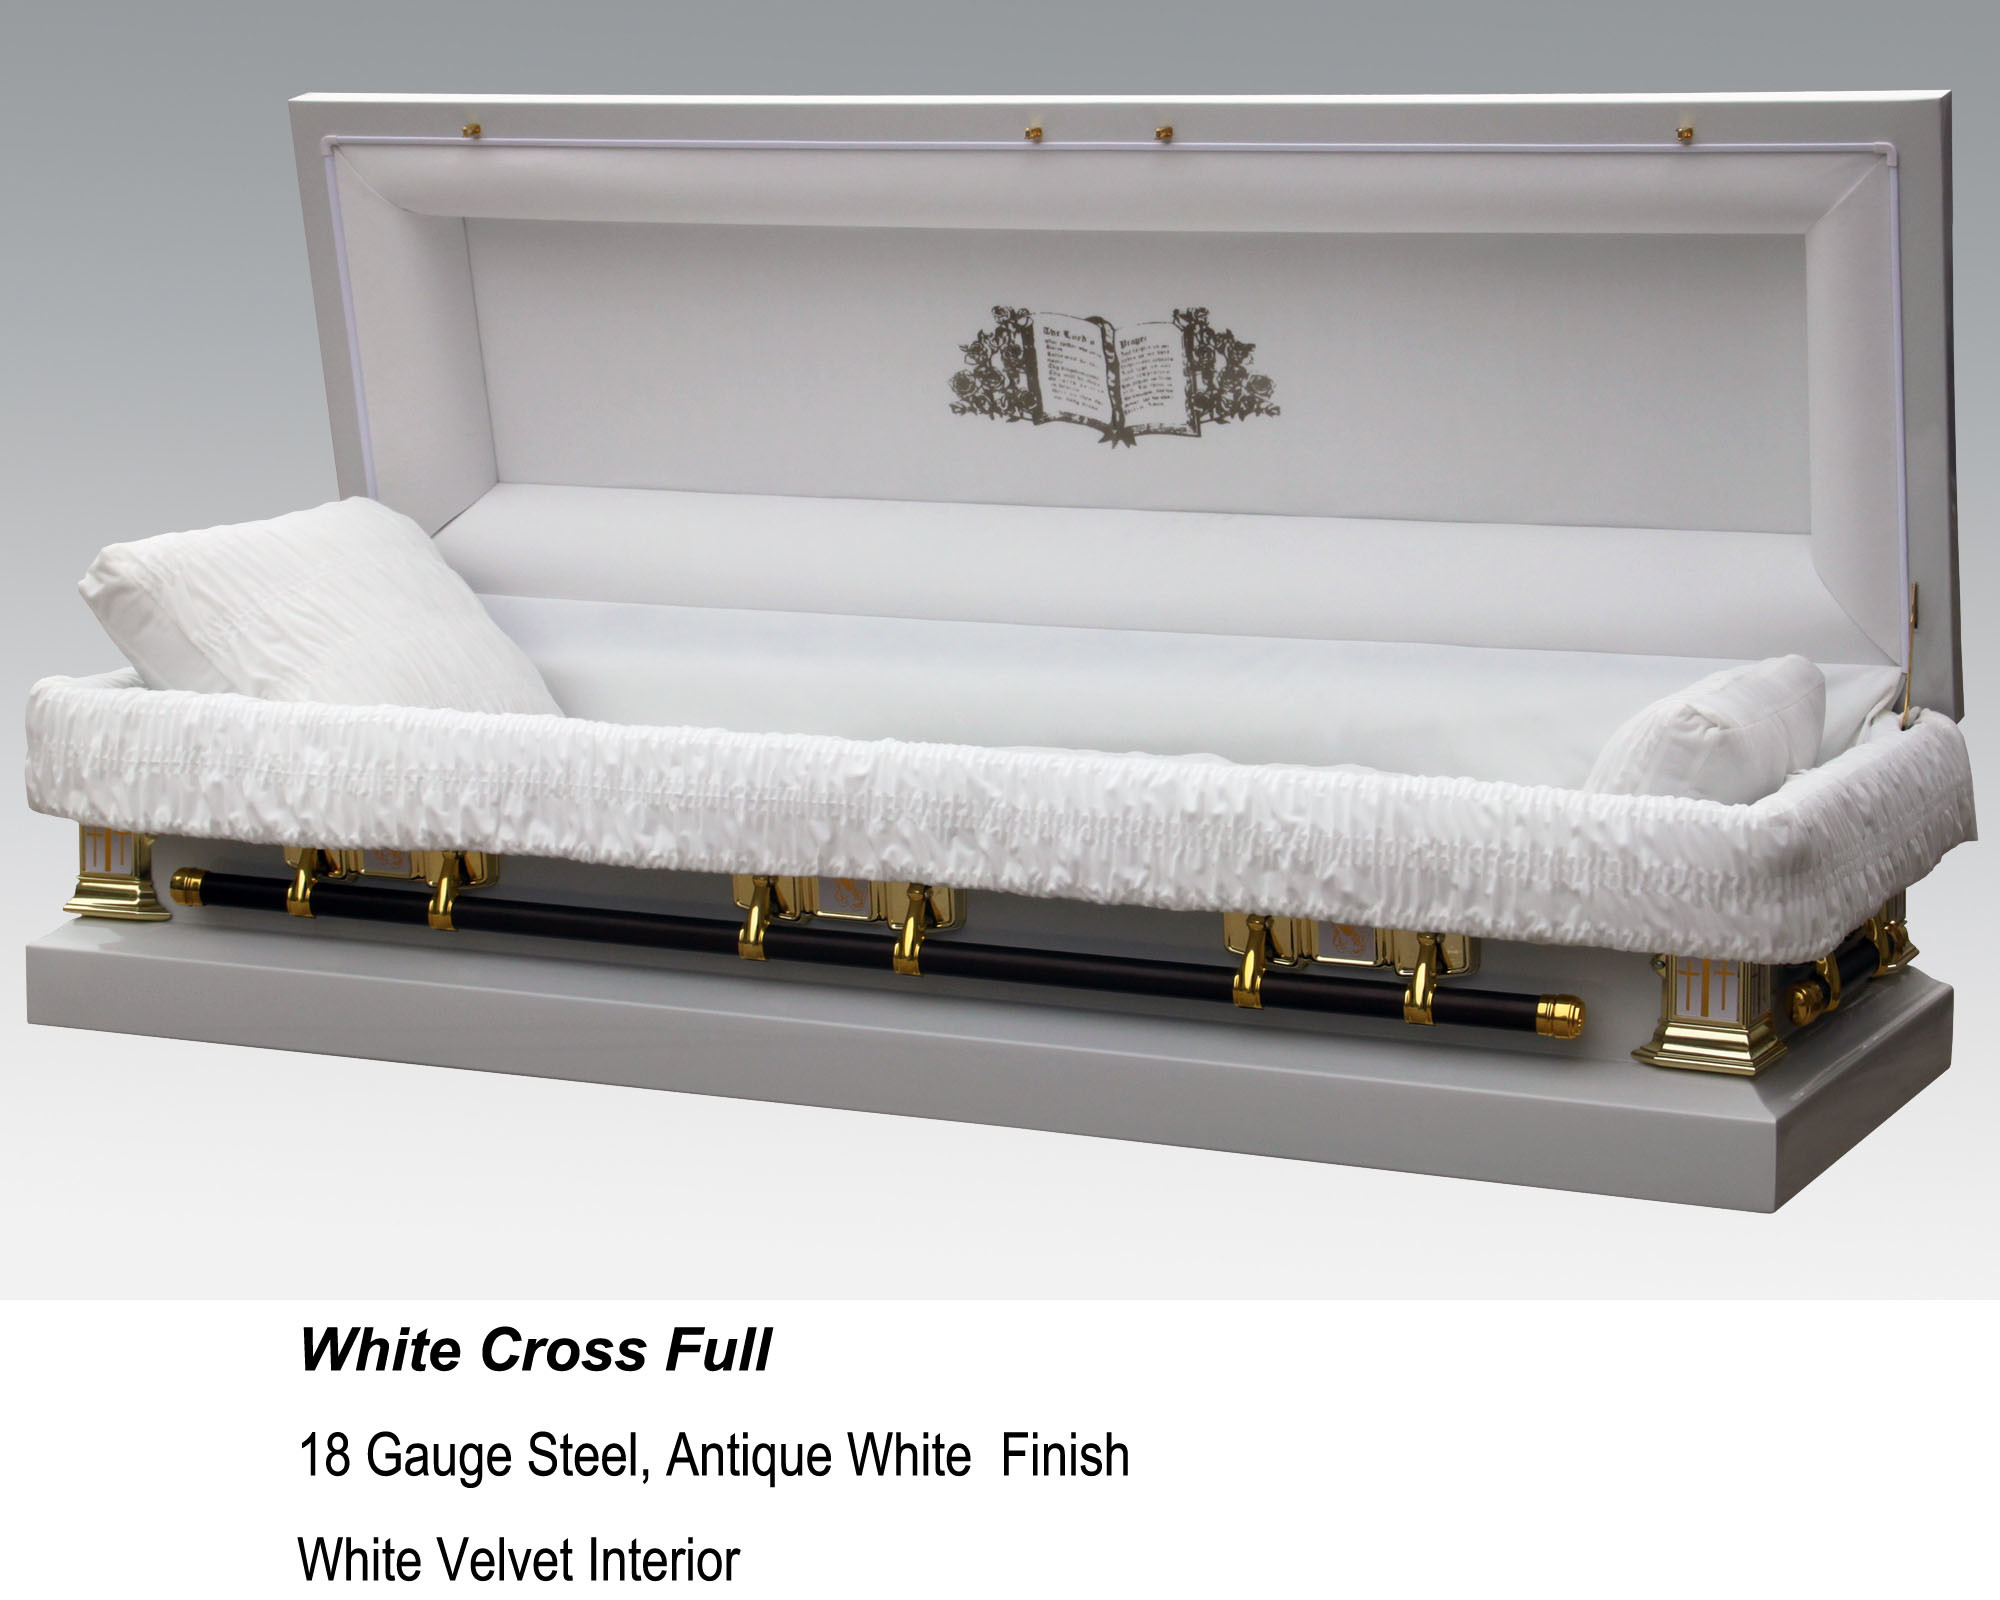 China White Cross Full Couch Casket Photos Pictures